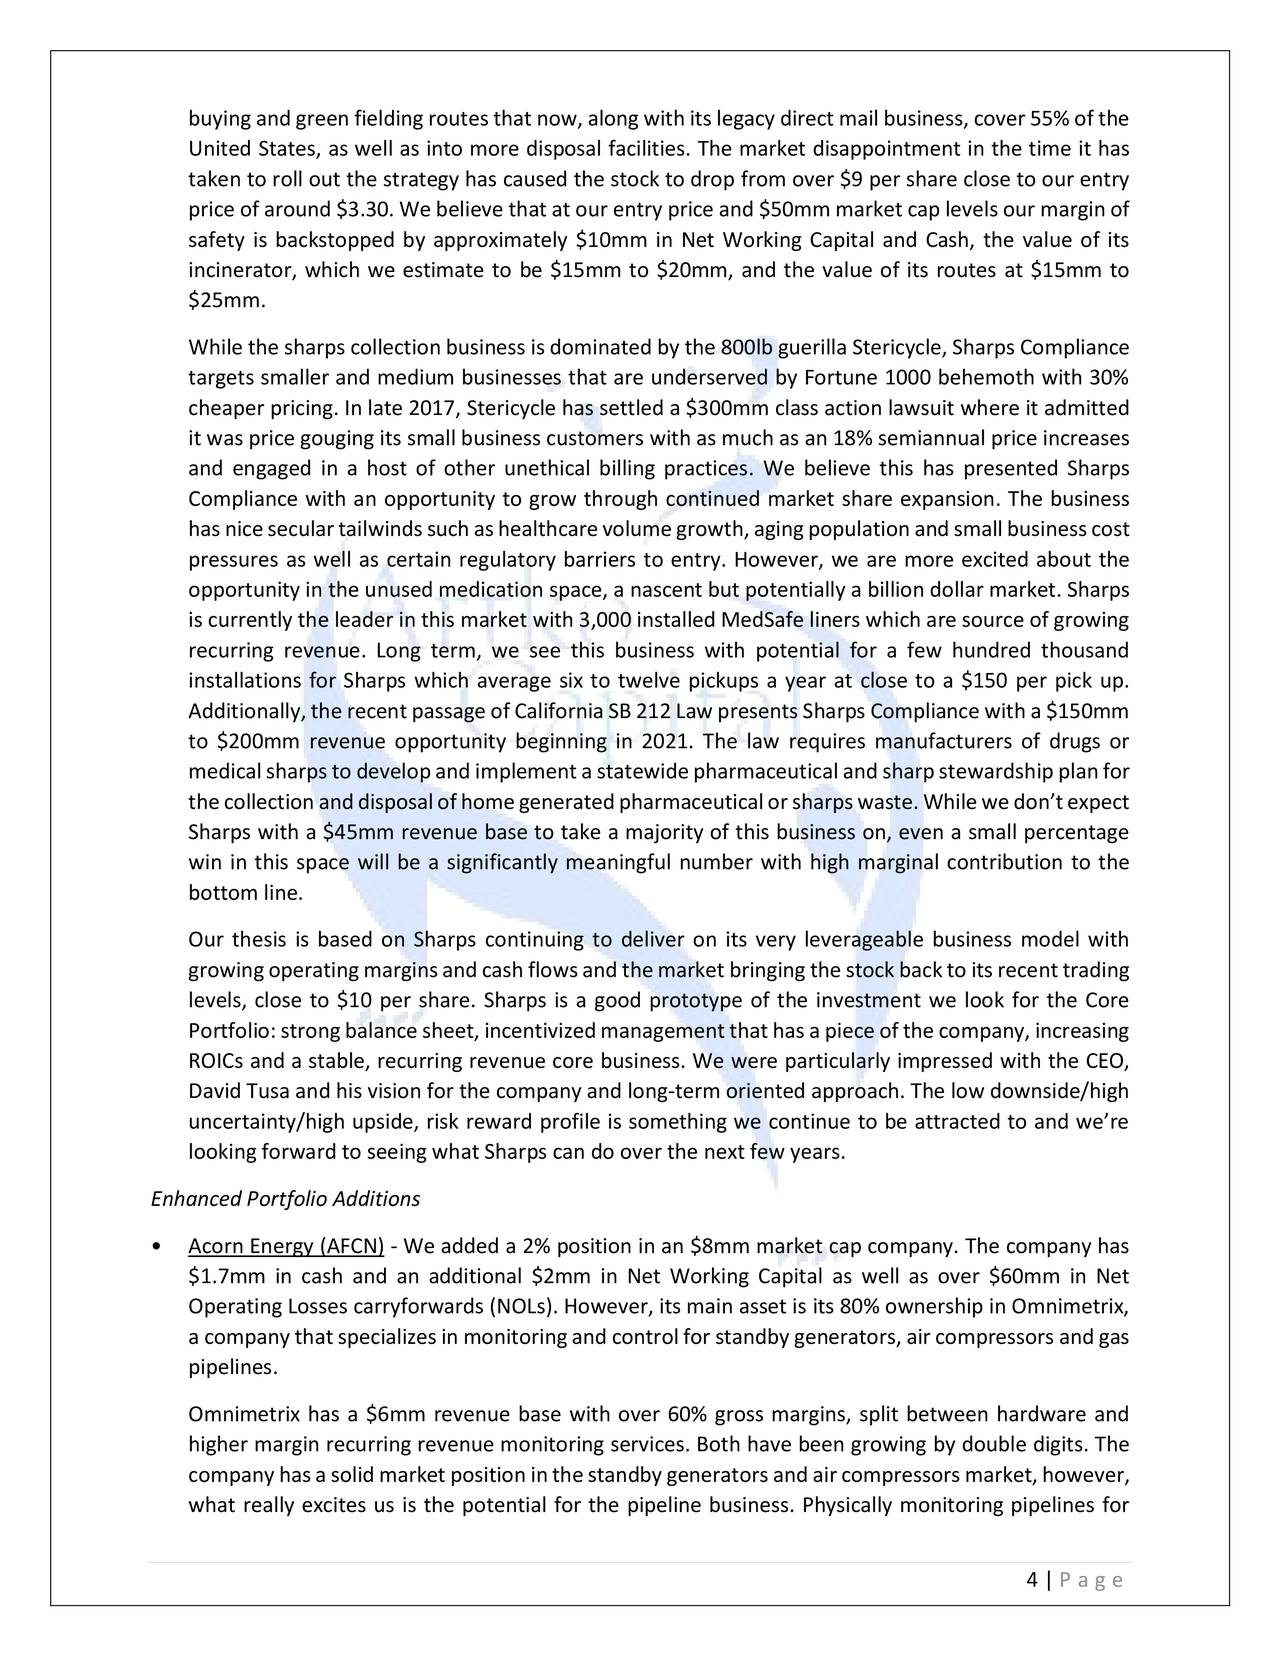 Artko Capital Q4 2018 Partner Letter Sharps Compliance